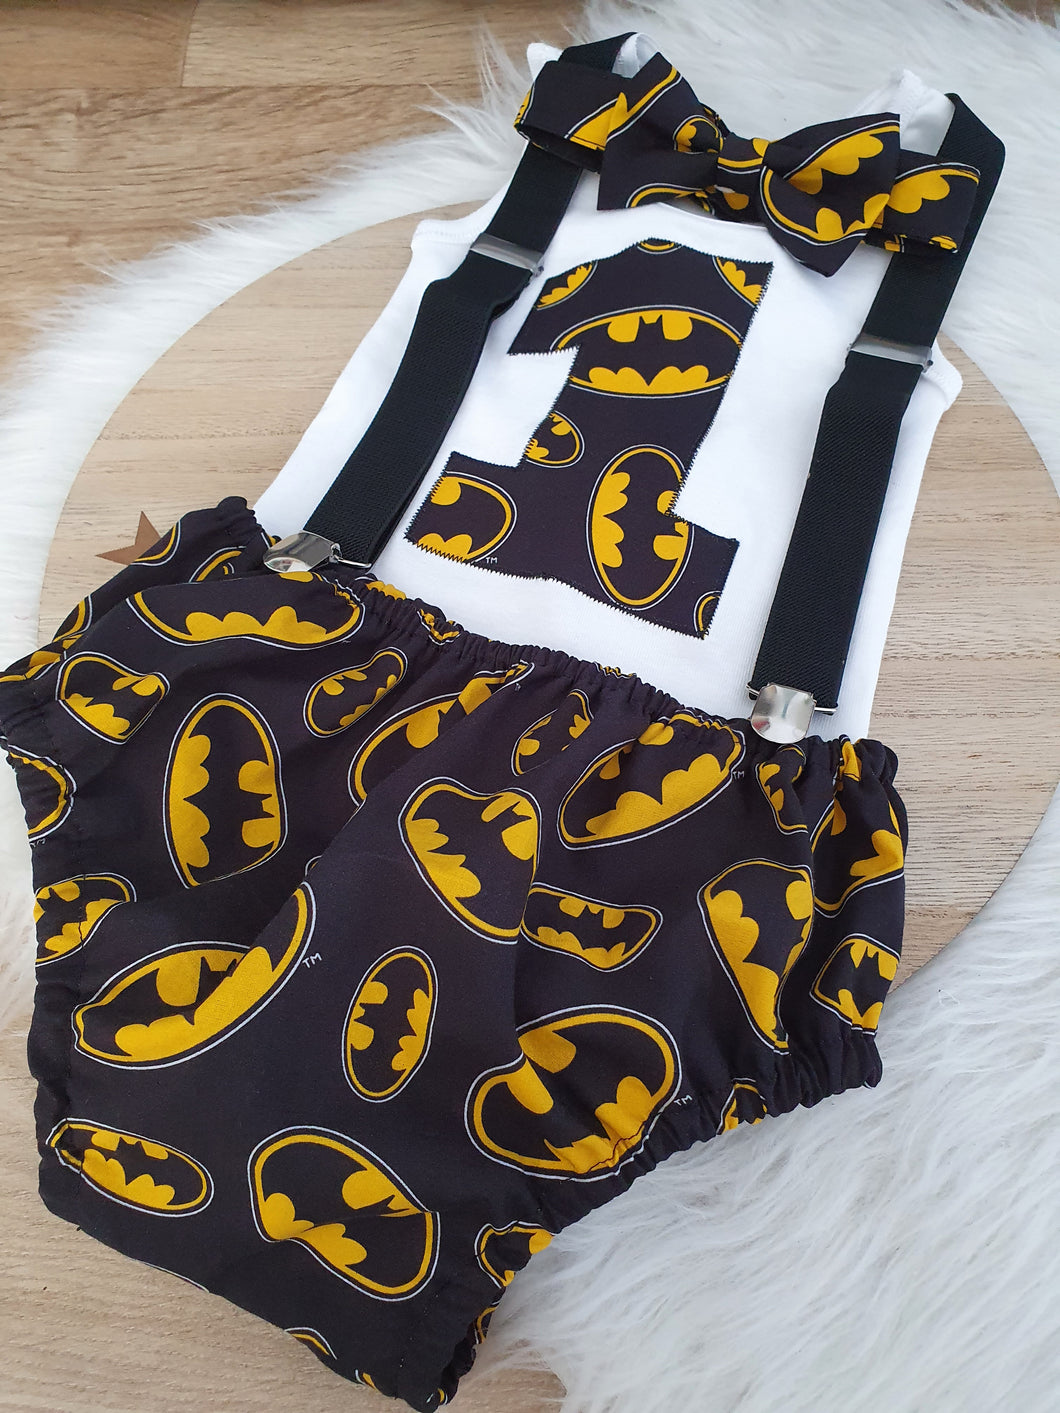 BATMAN print - Boys 1st Birthday - Cake Smash Outfit - Size 1, Nappy Cover, Tie, Suspenders & Singlet Set